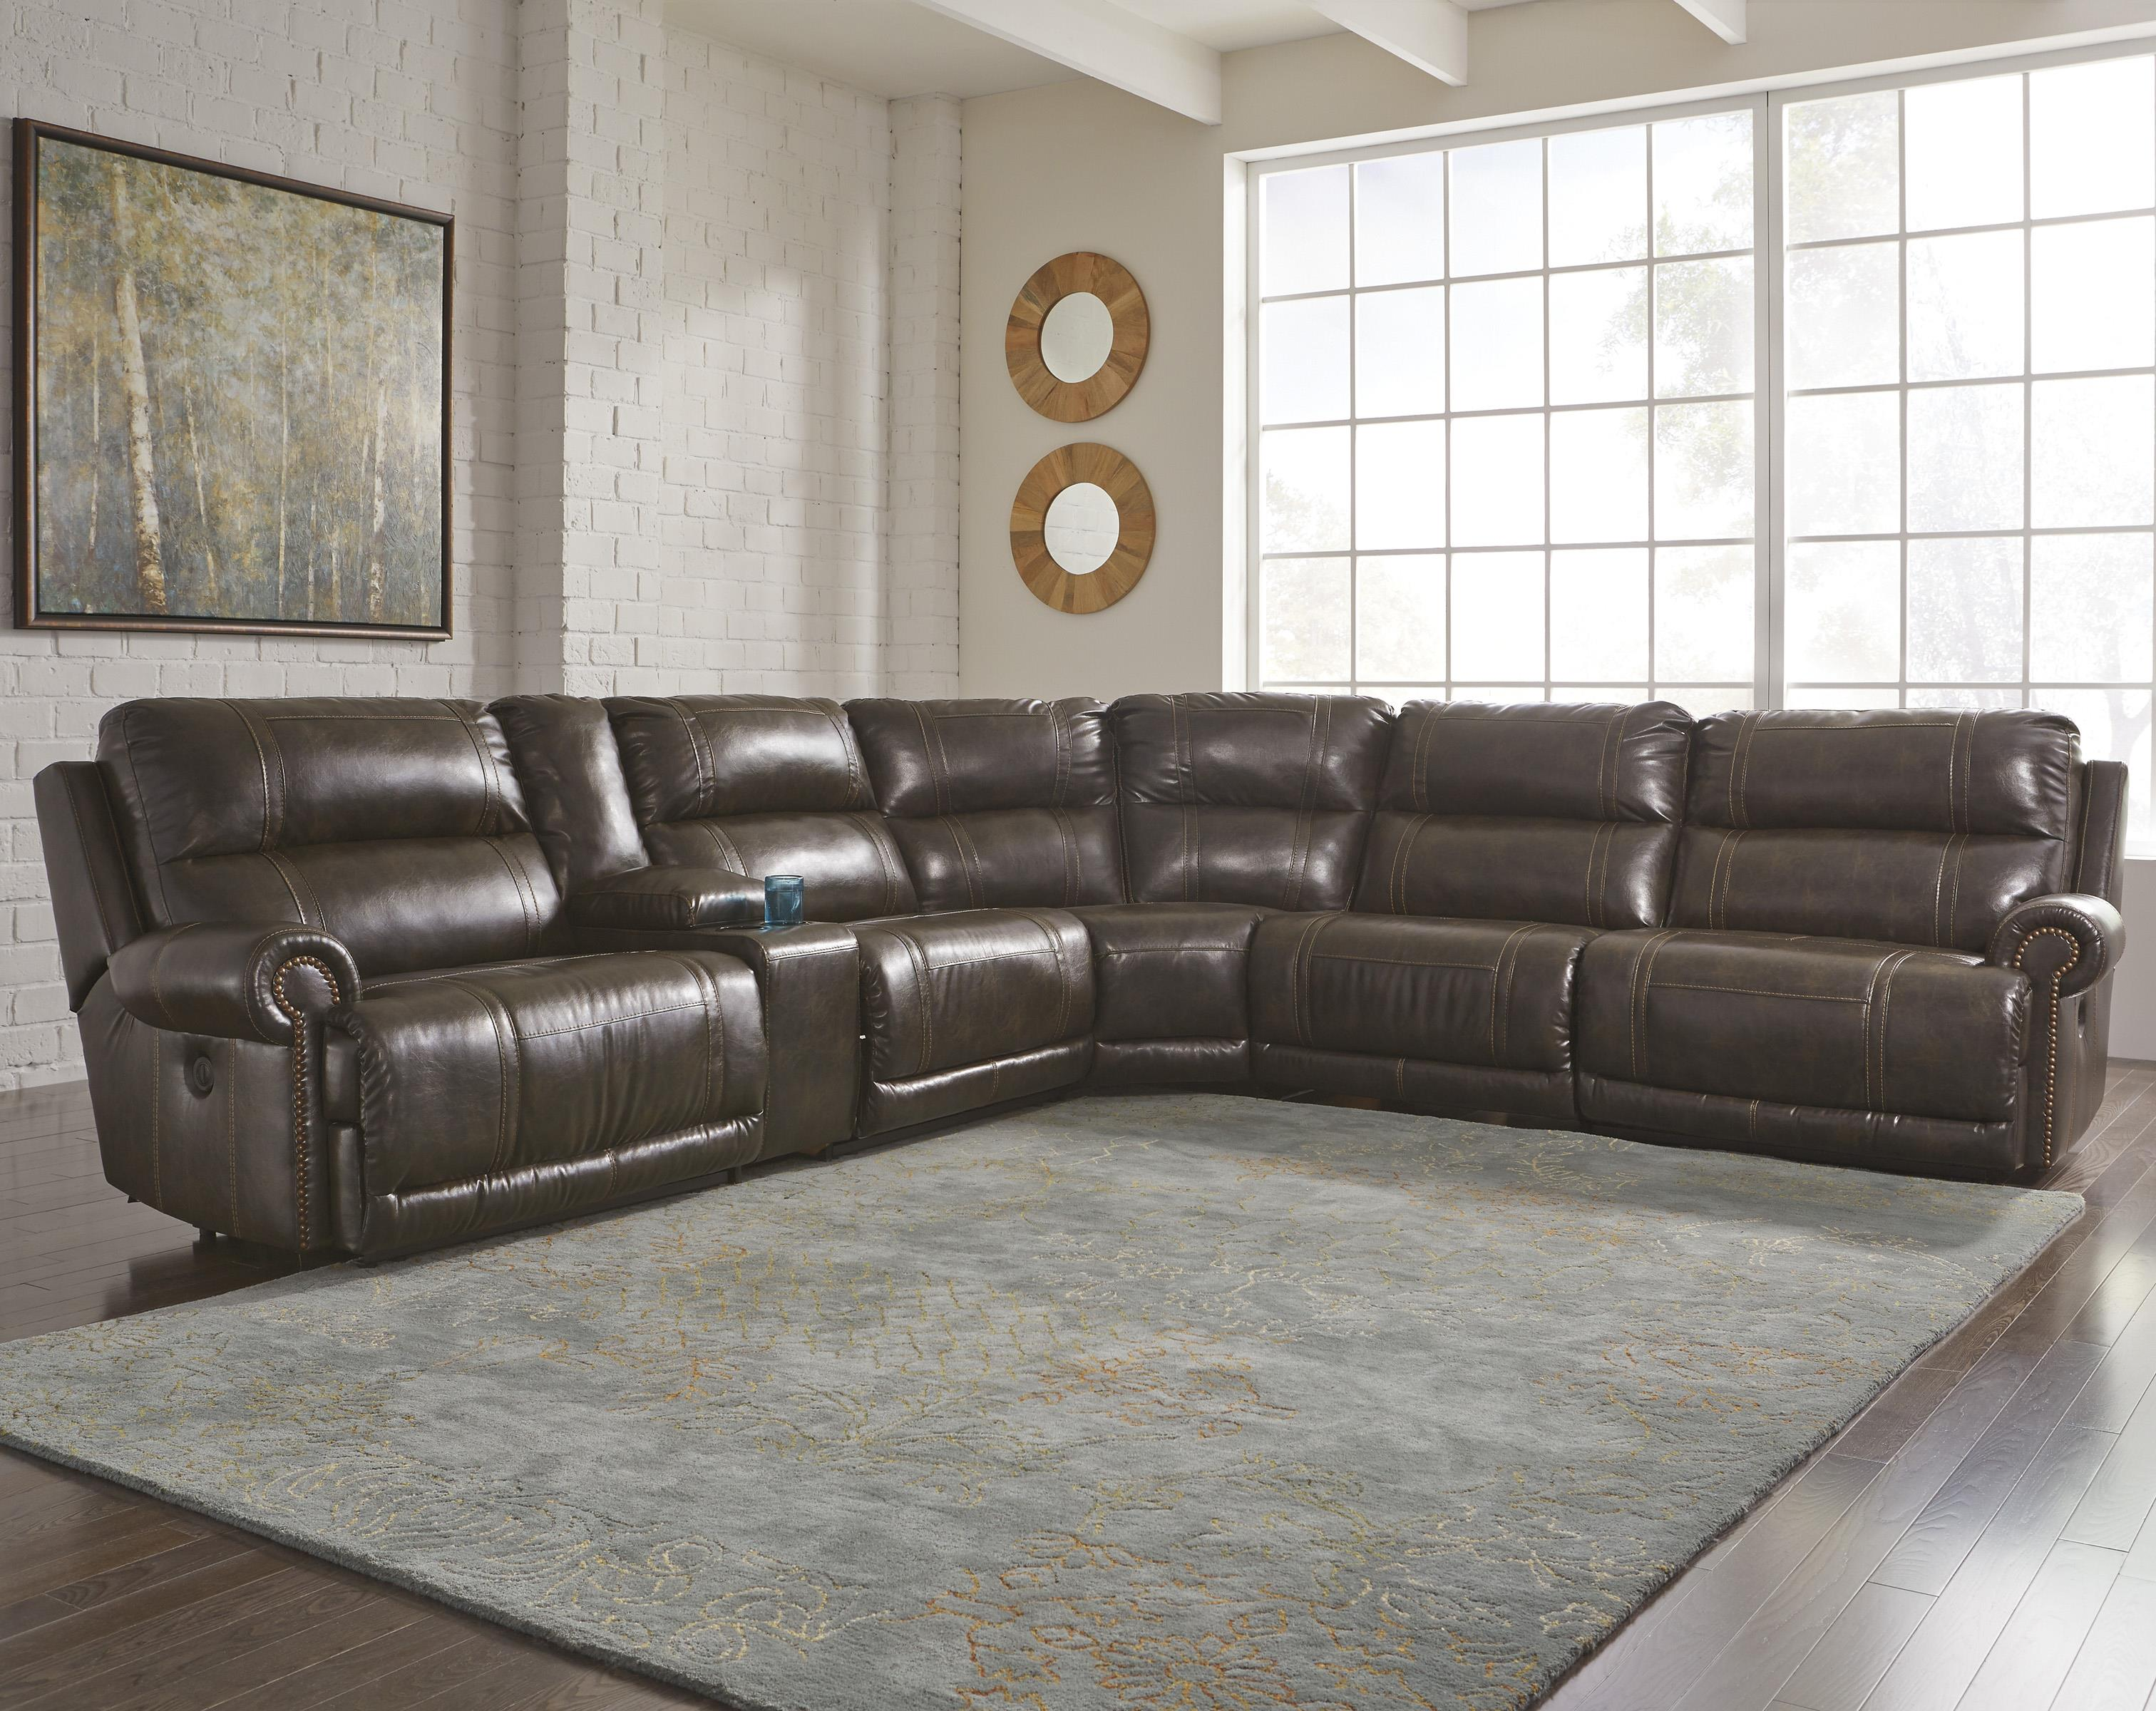 6 Piece Power Reclining Sectional with Storage Console & Armless